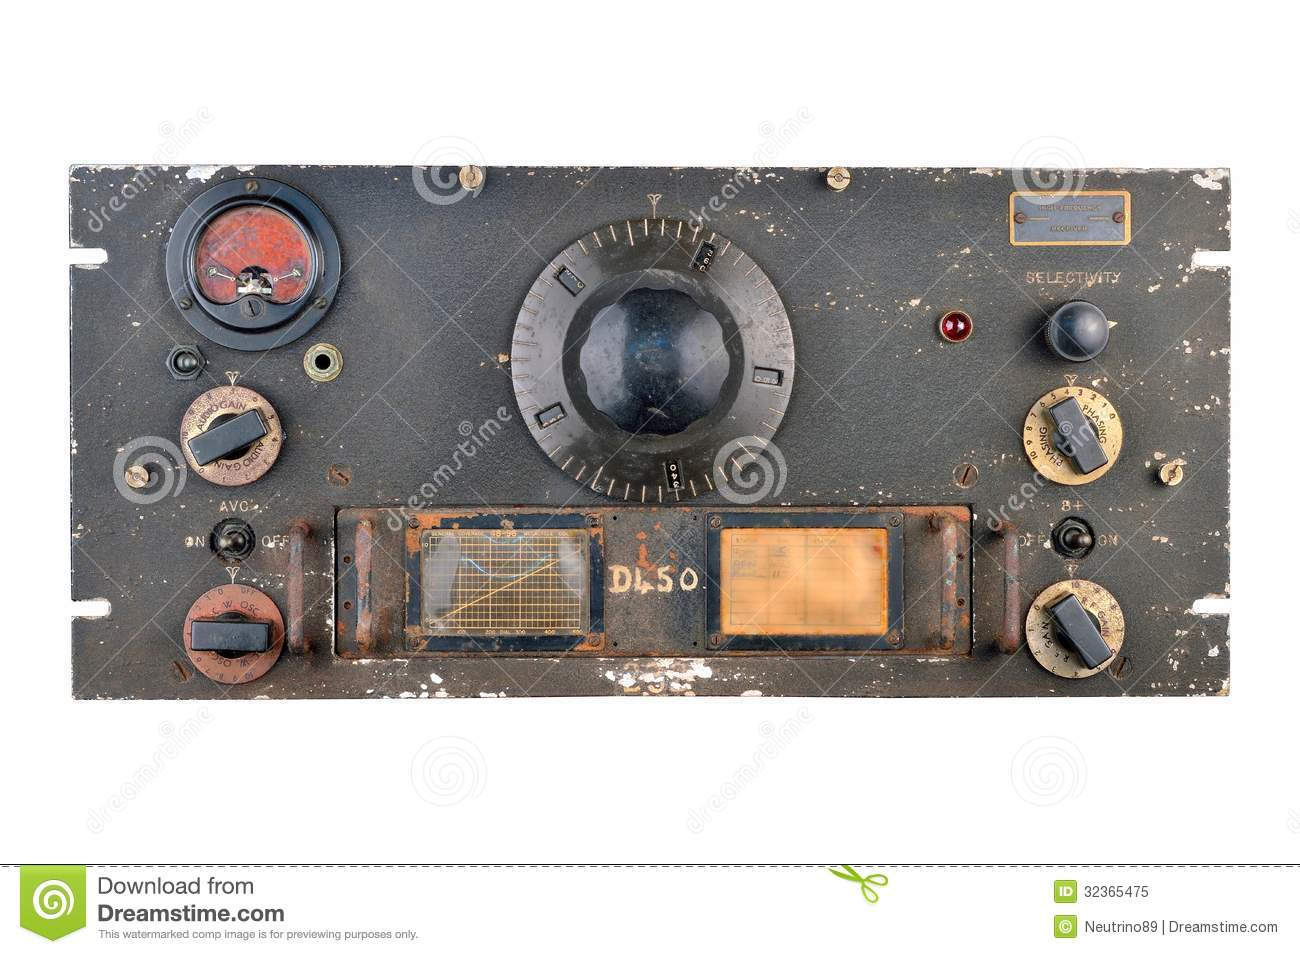 Ww2 radio receiver stock image  Image of vintage, receiver